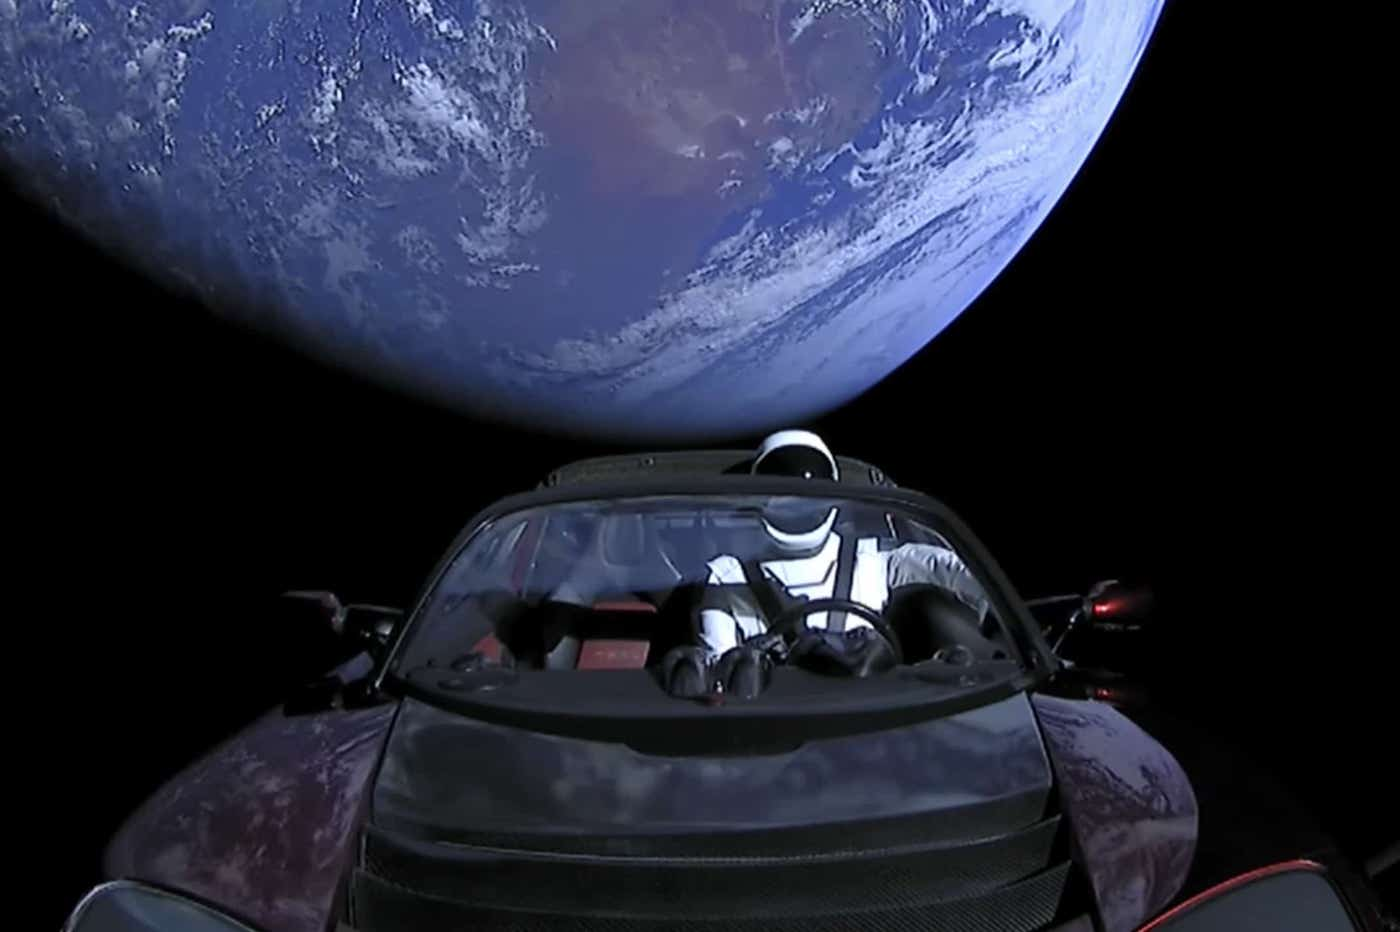 SpaceX pourrait envoyer un engin en direction de Starman